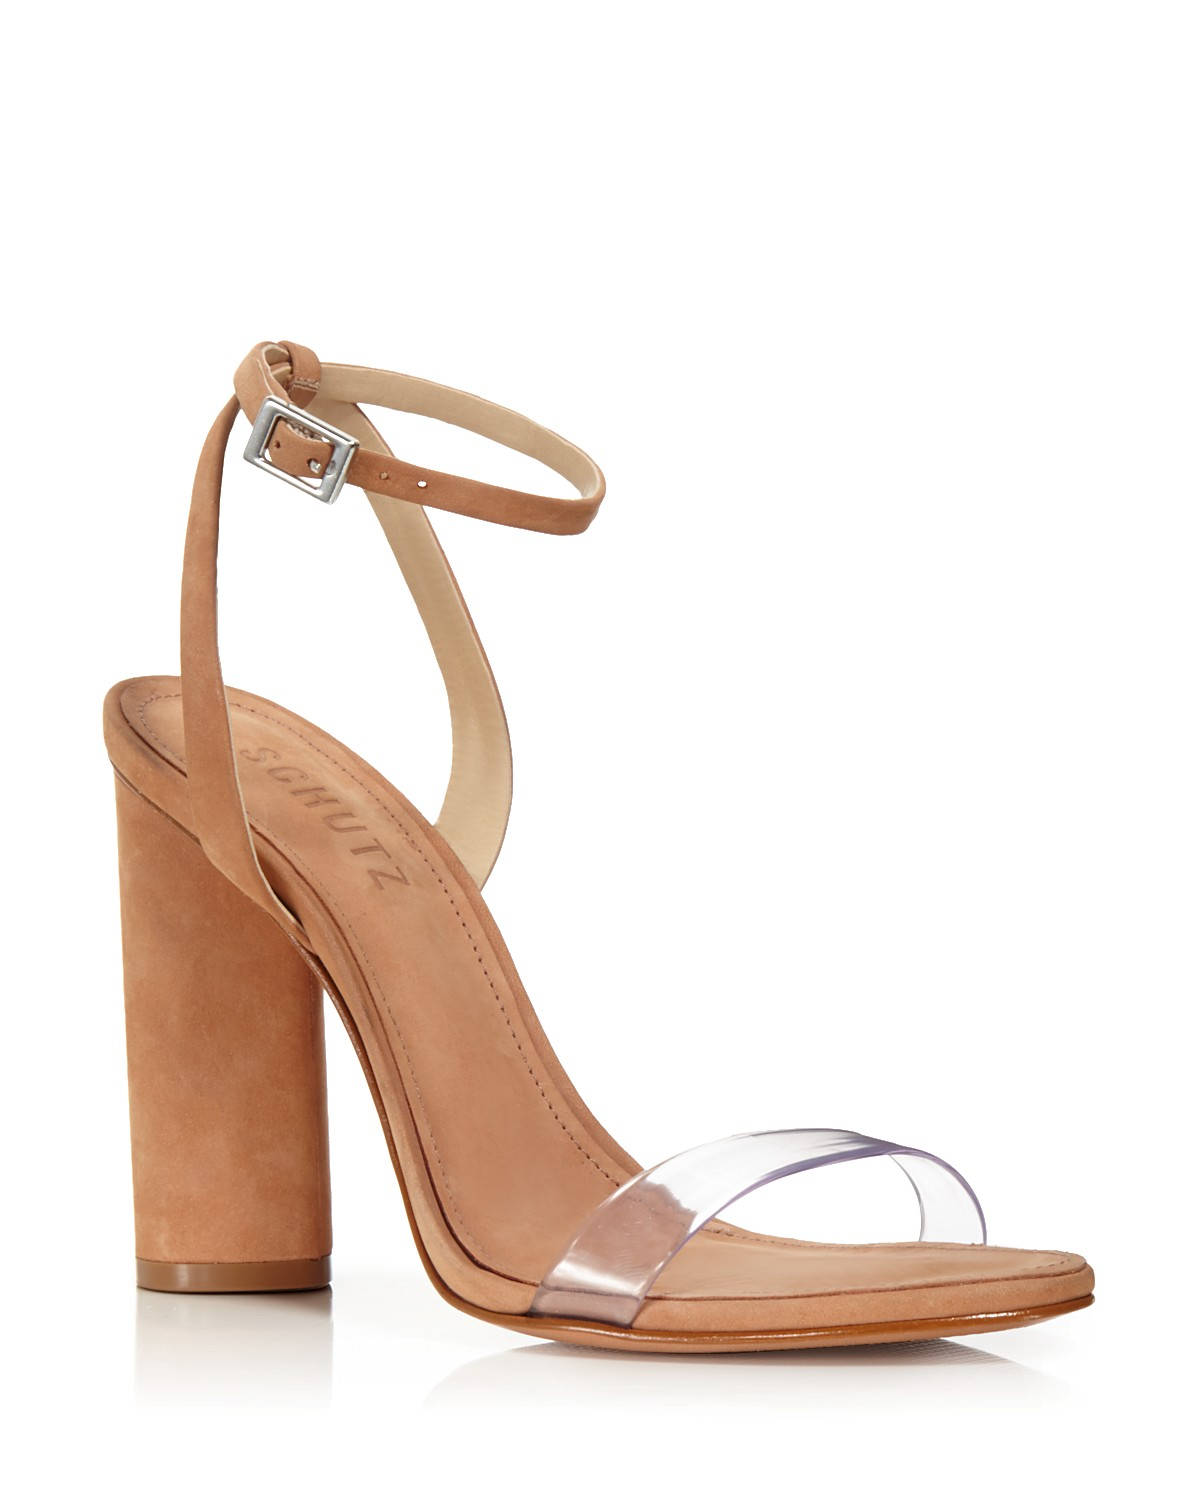 Schutz Geisy Suede Ankle-Strap Sandals dItOAoU